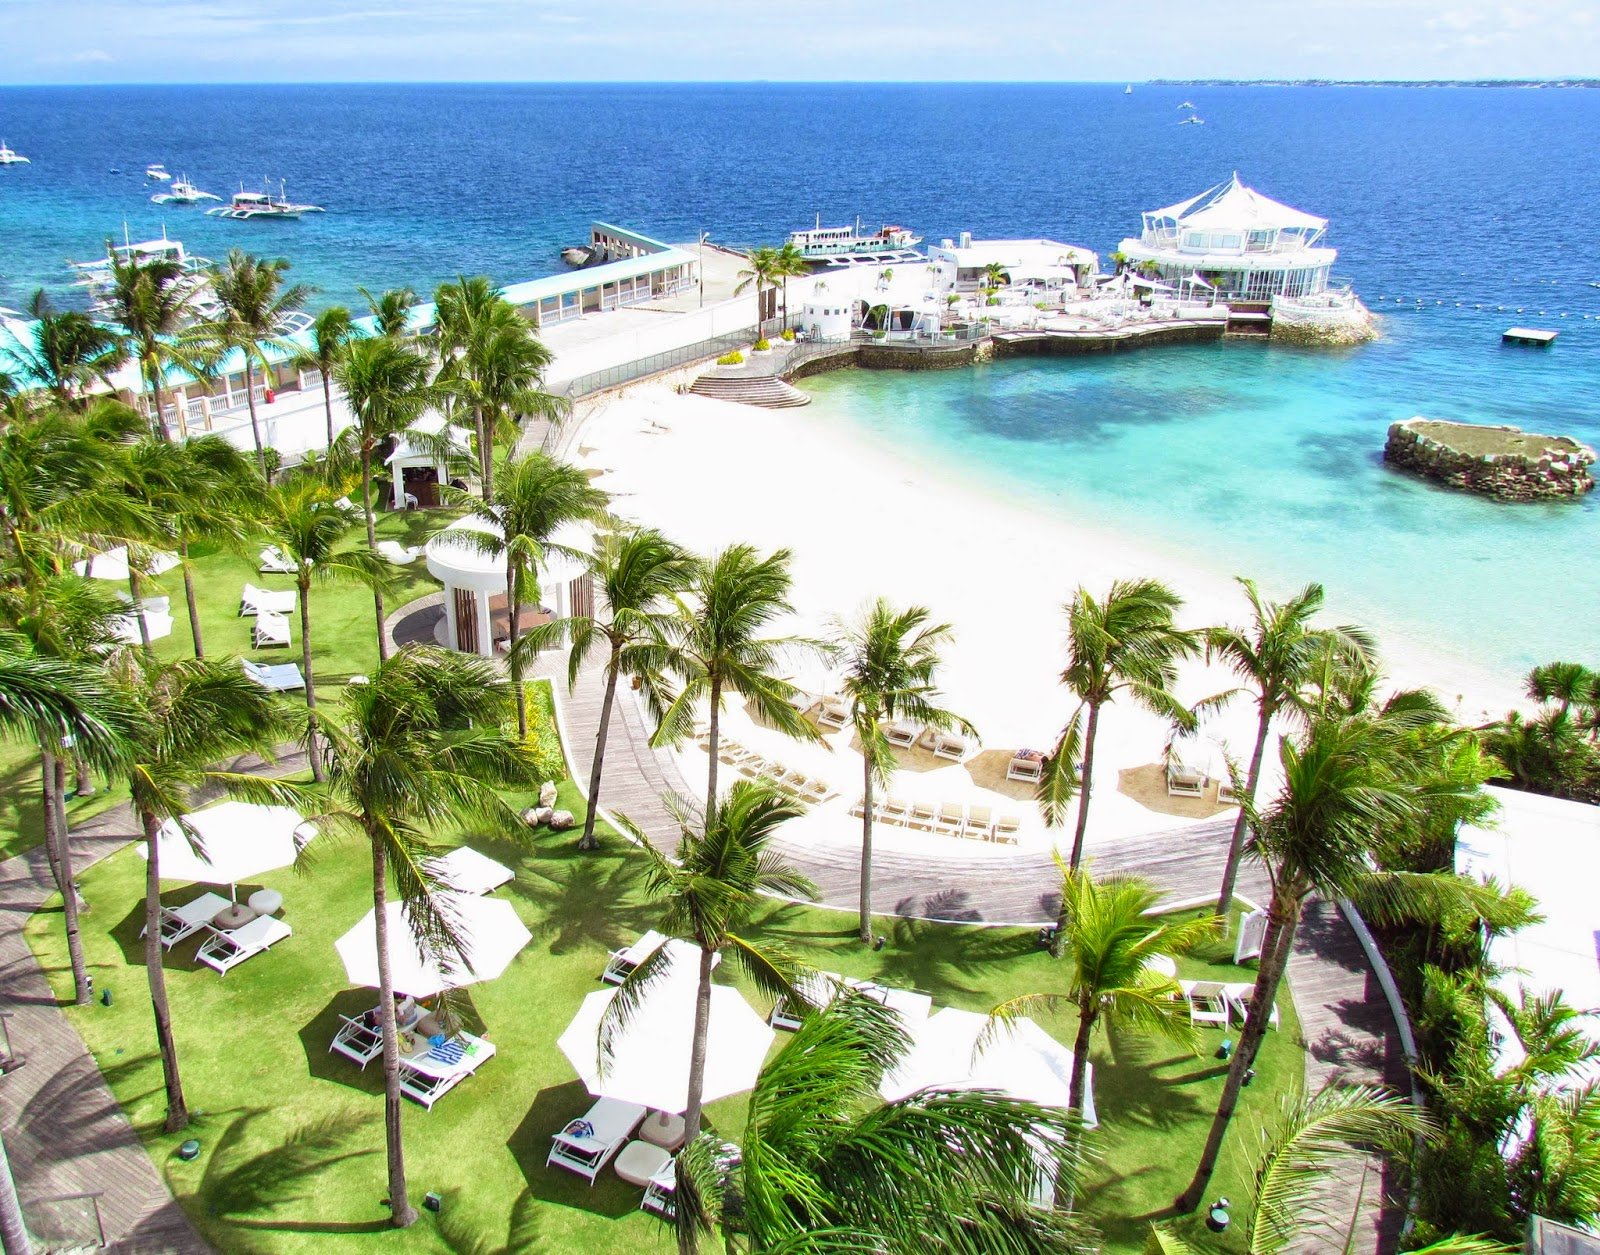 movenpick island cebu resort